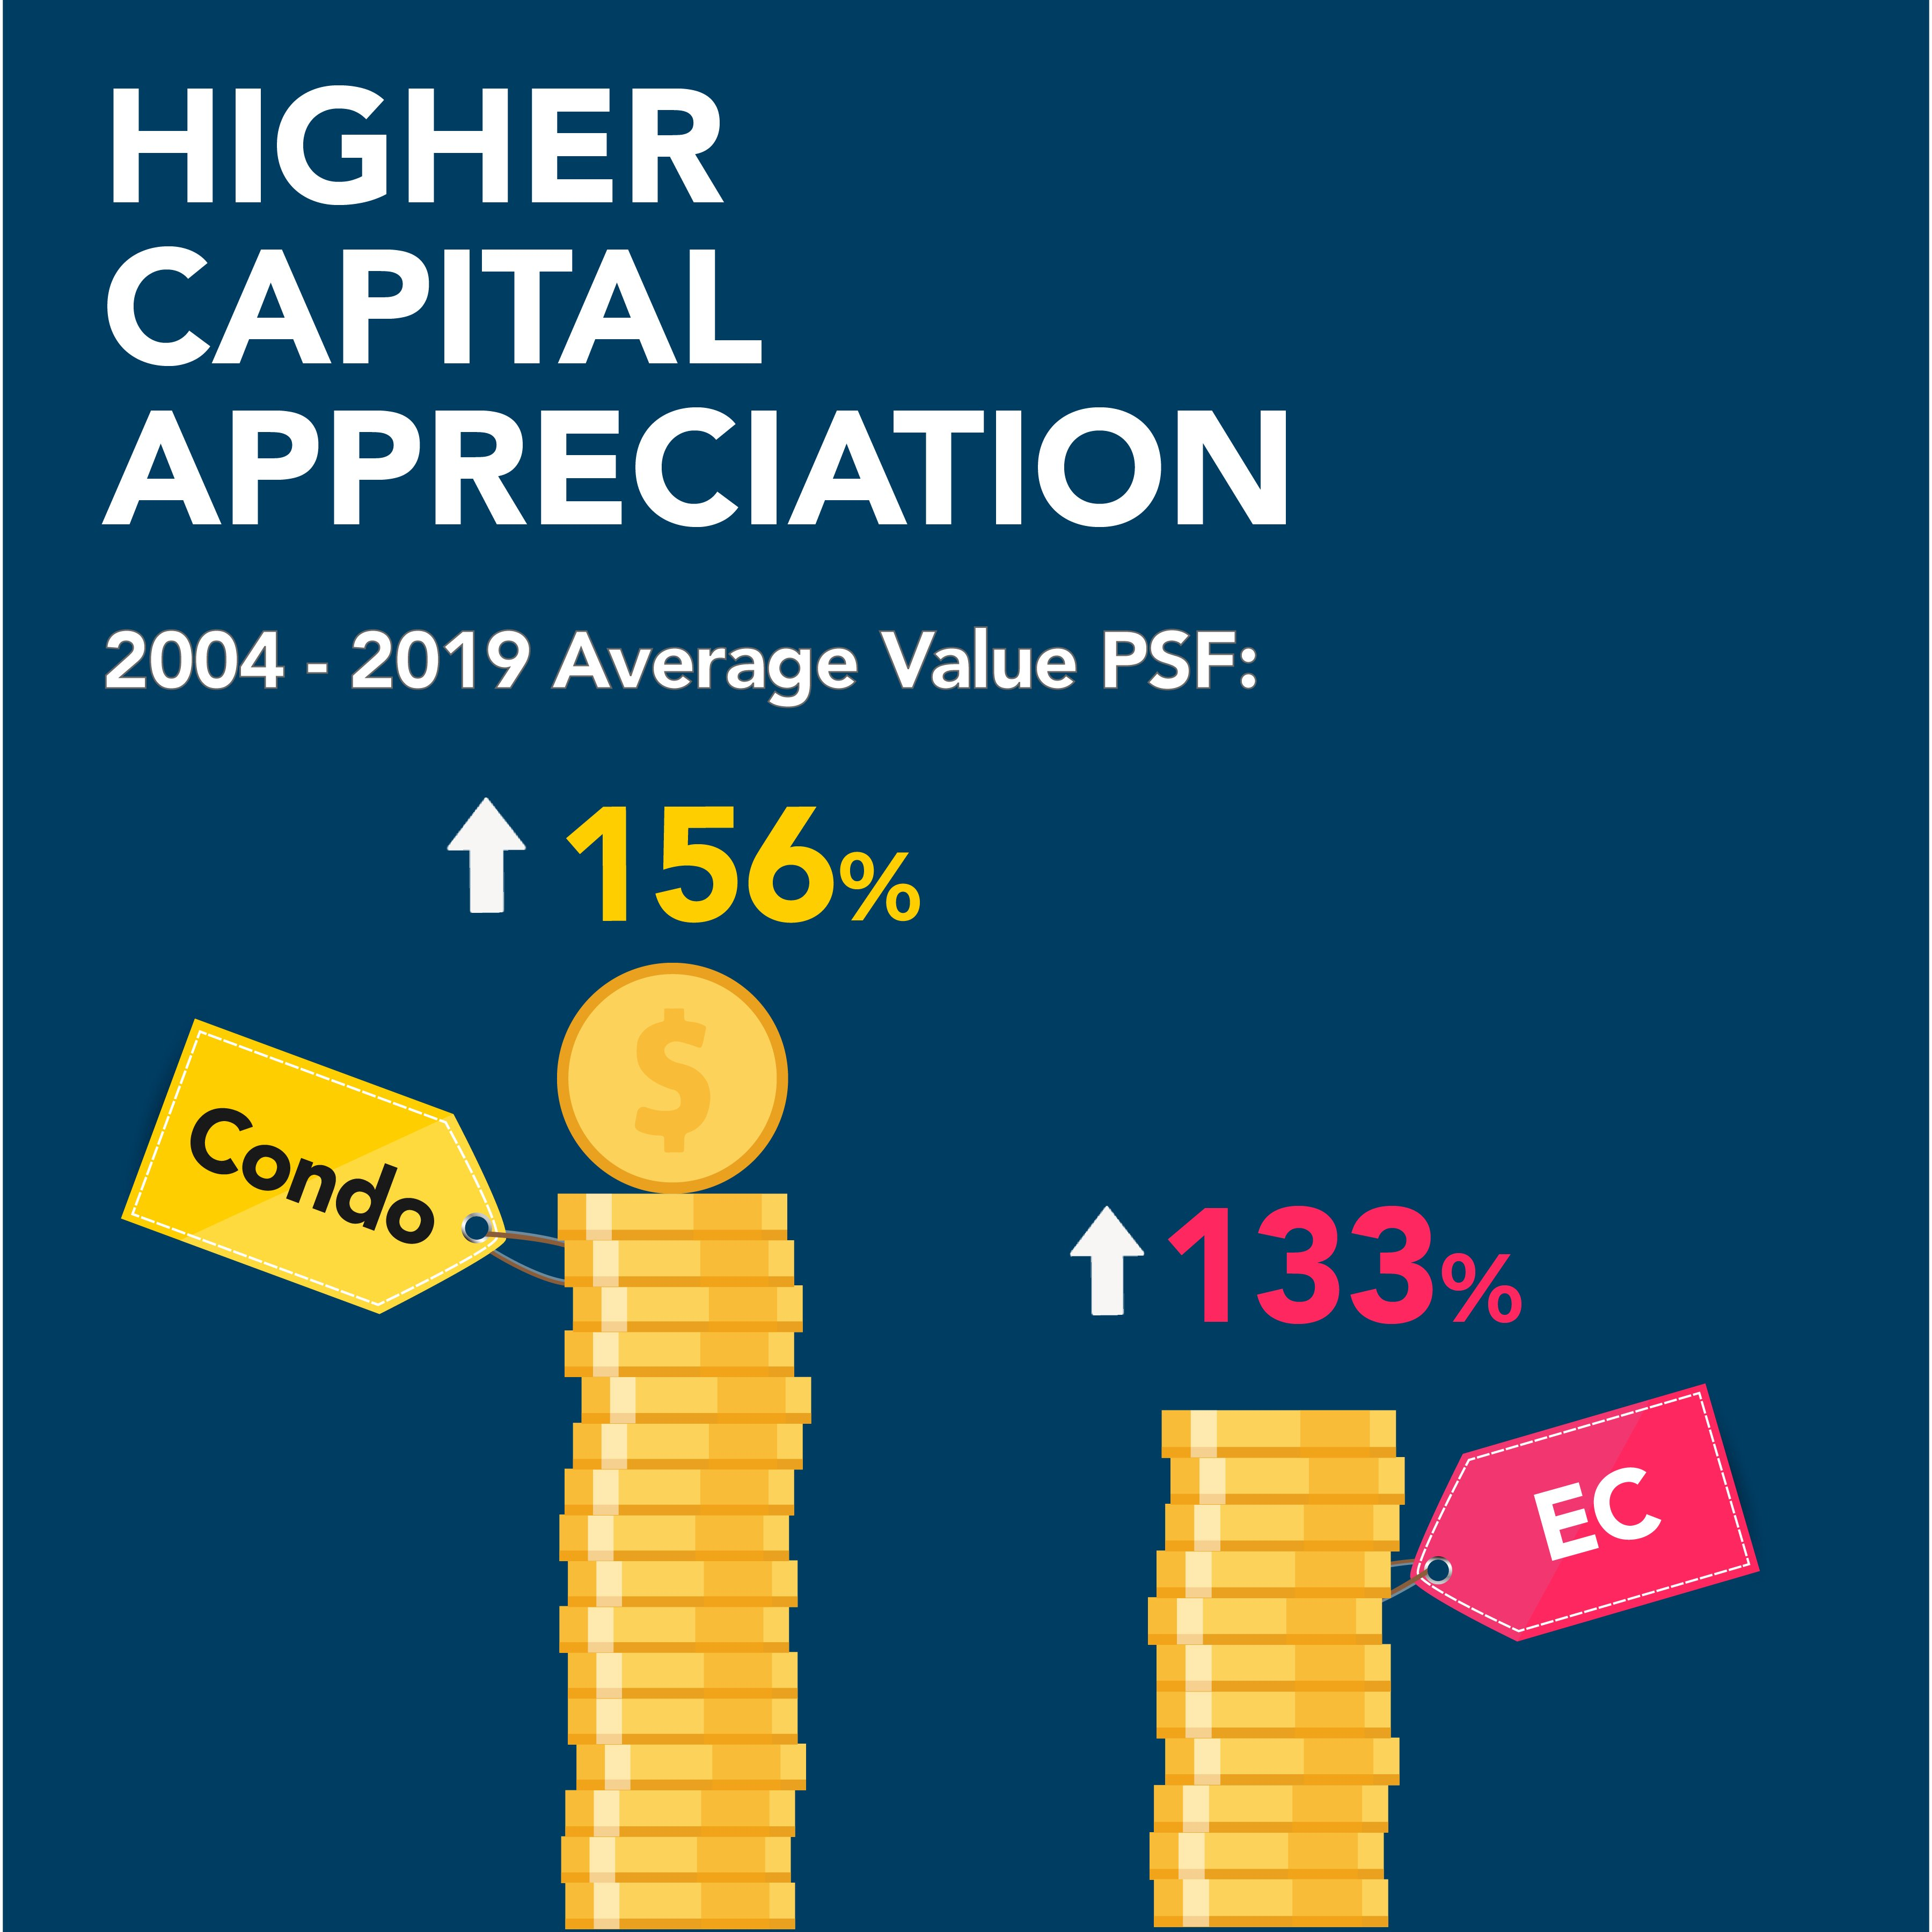 The prices of private condominiums have appreciated by 156 per cent since 2004 while ECs have fallen behind at 132 per cent